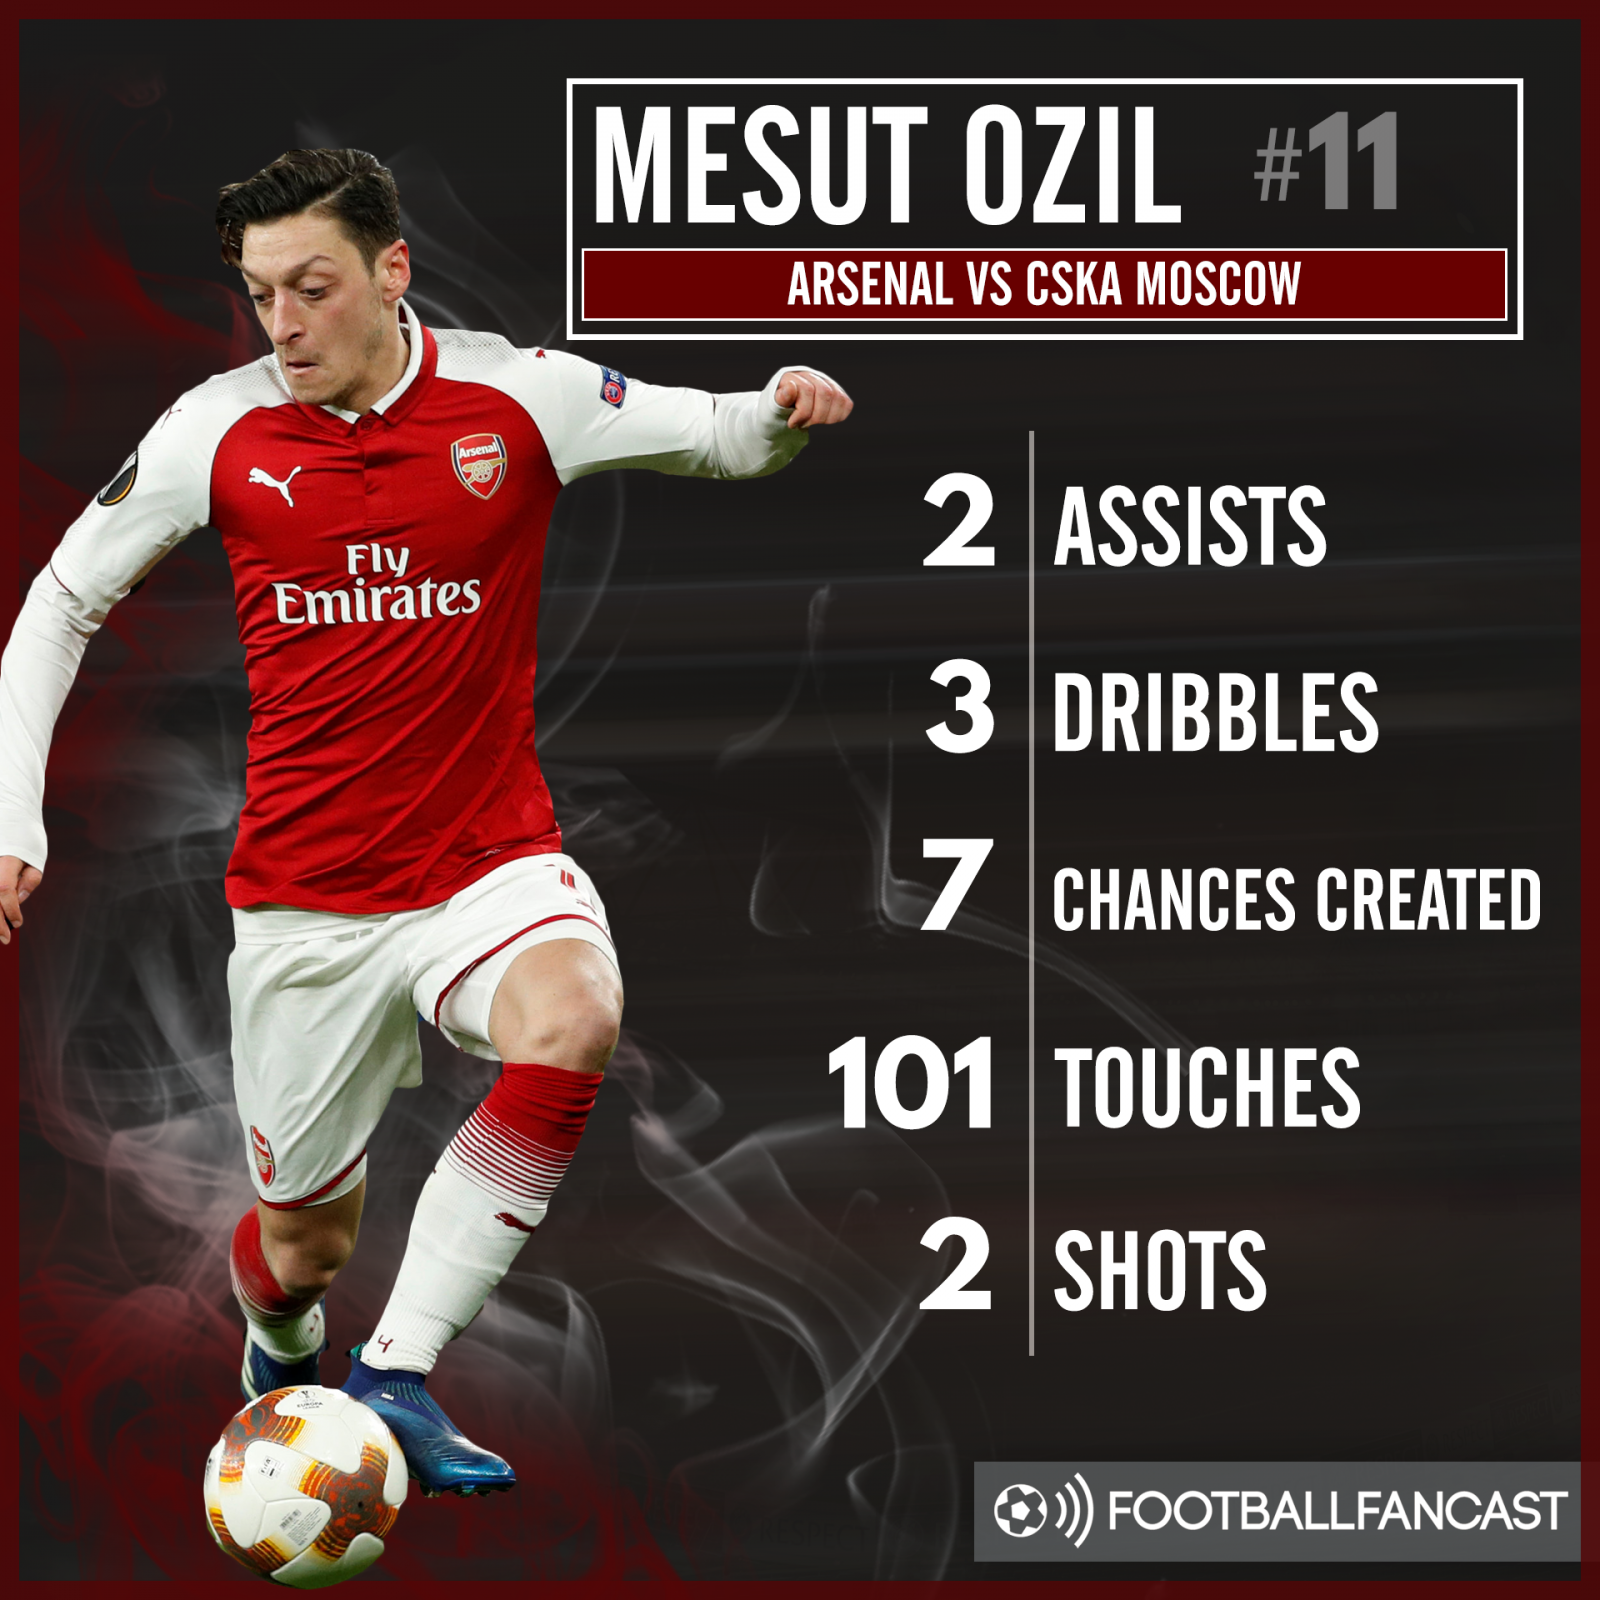 Mesut Ozil's stats from the 4-1 win over CSKA Moscow